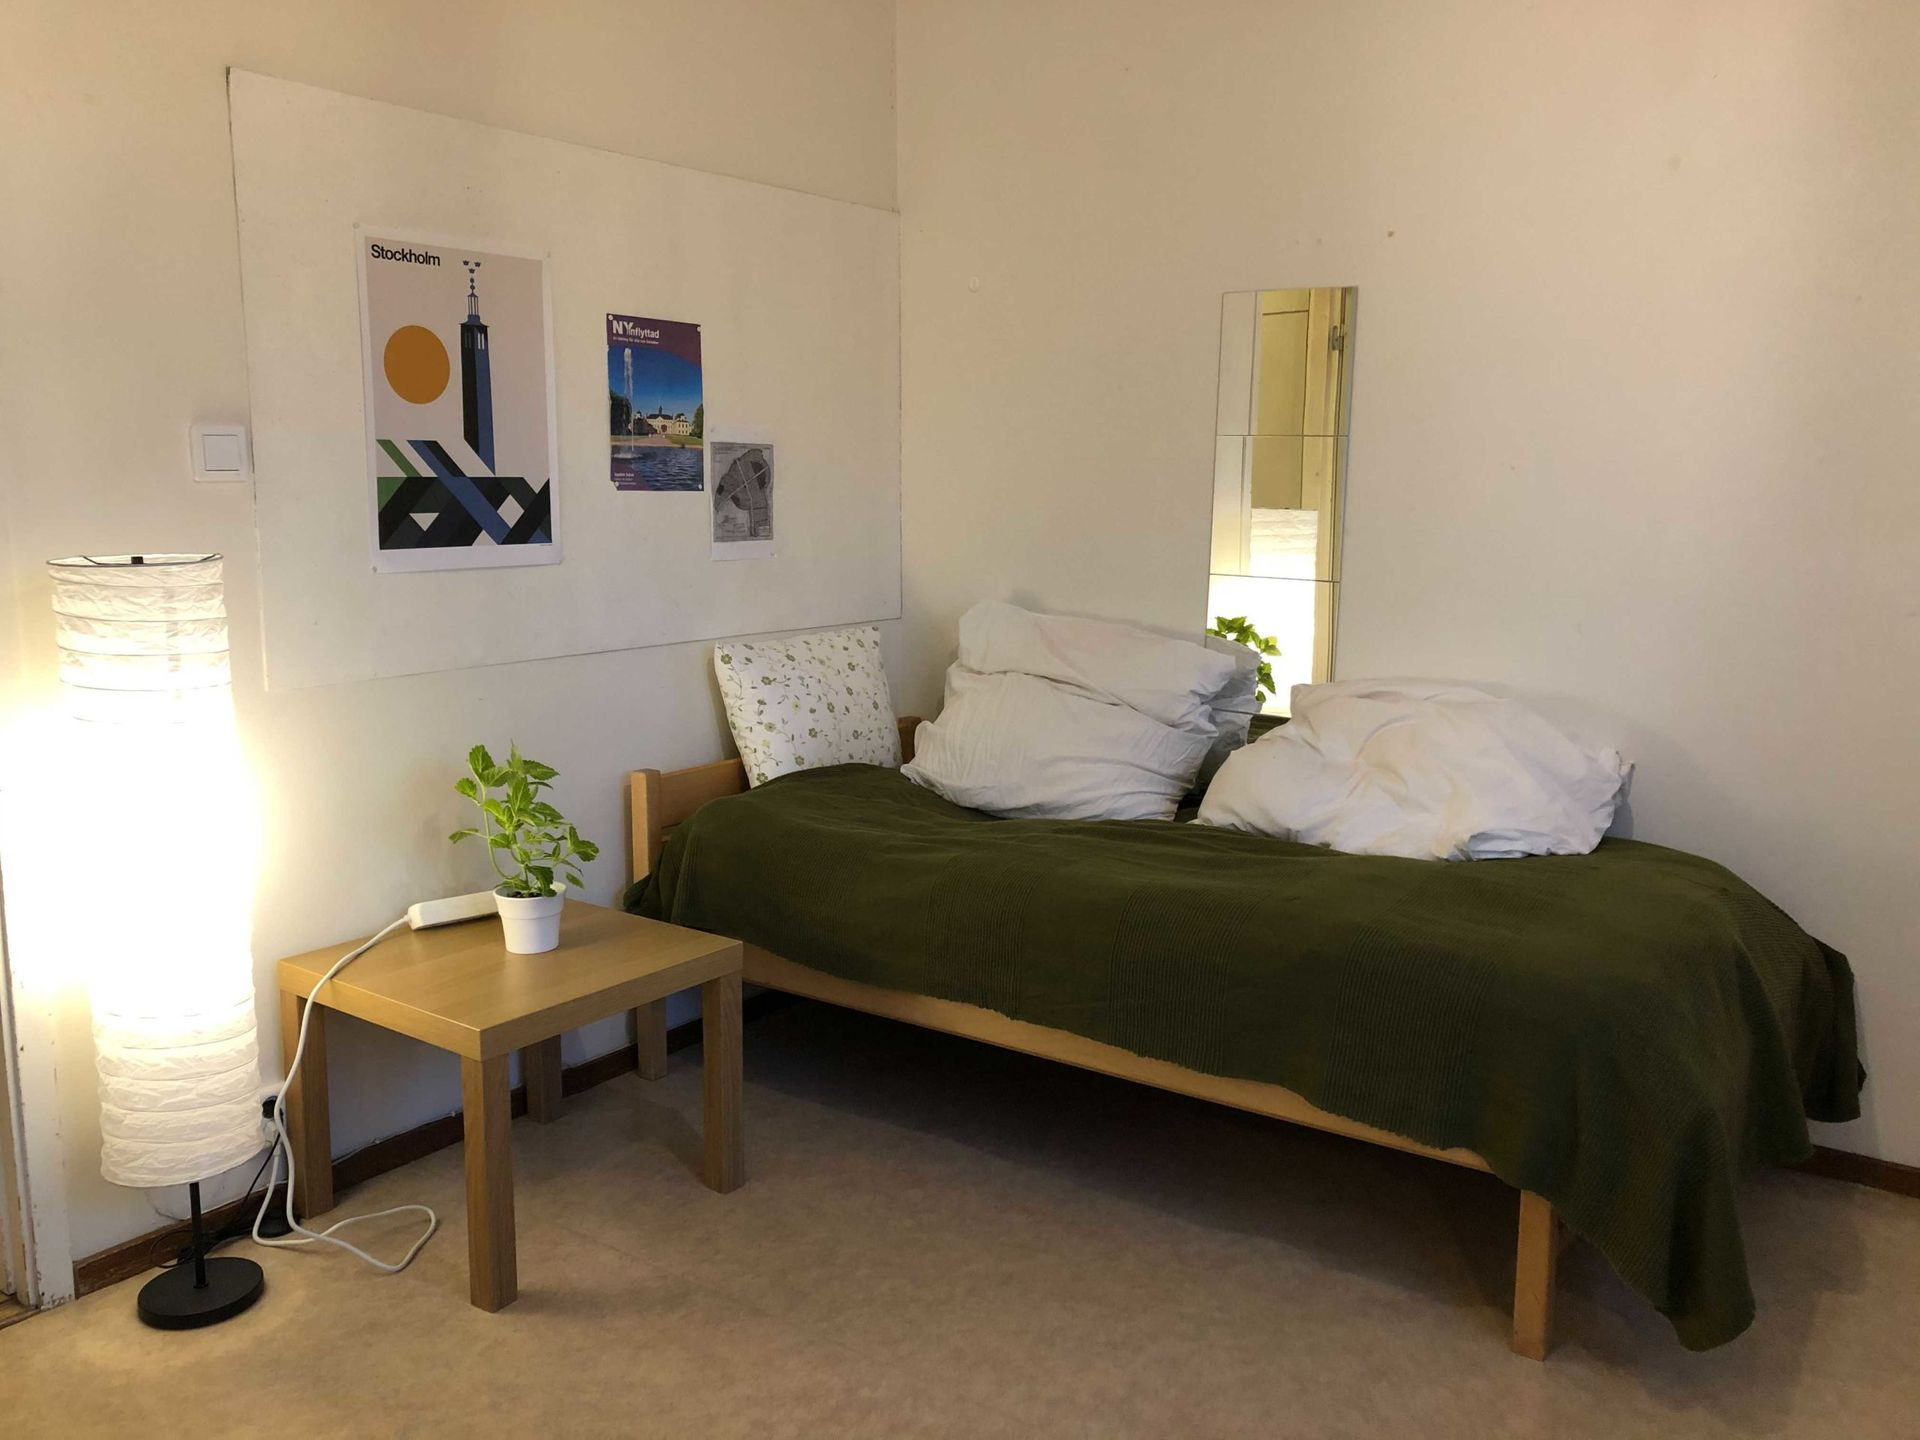 A twin bed with an olive green bedspread and side table with a plant